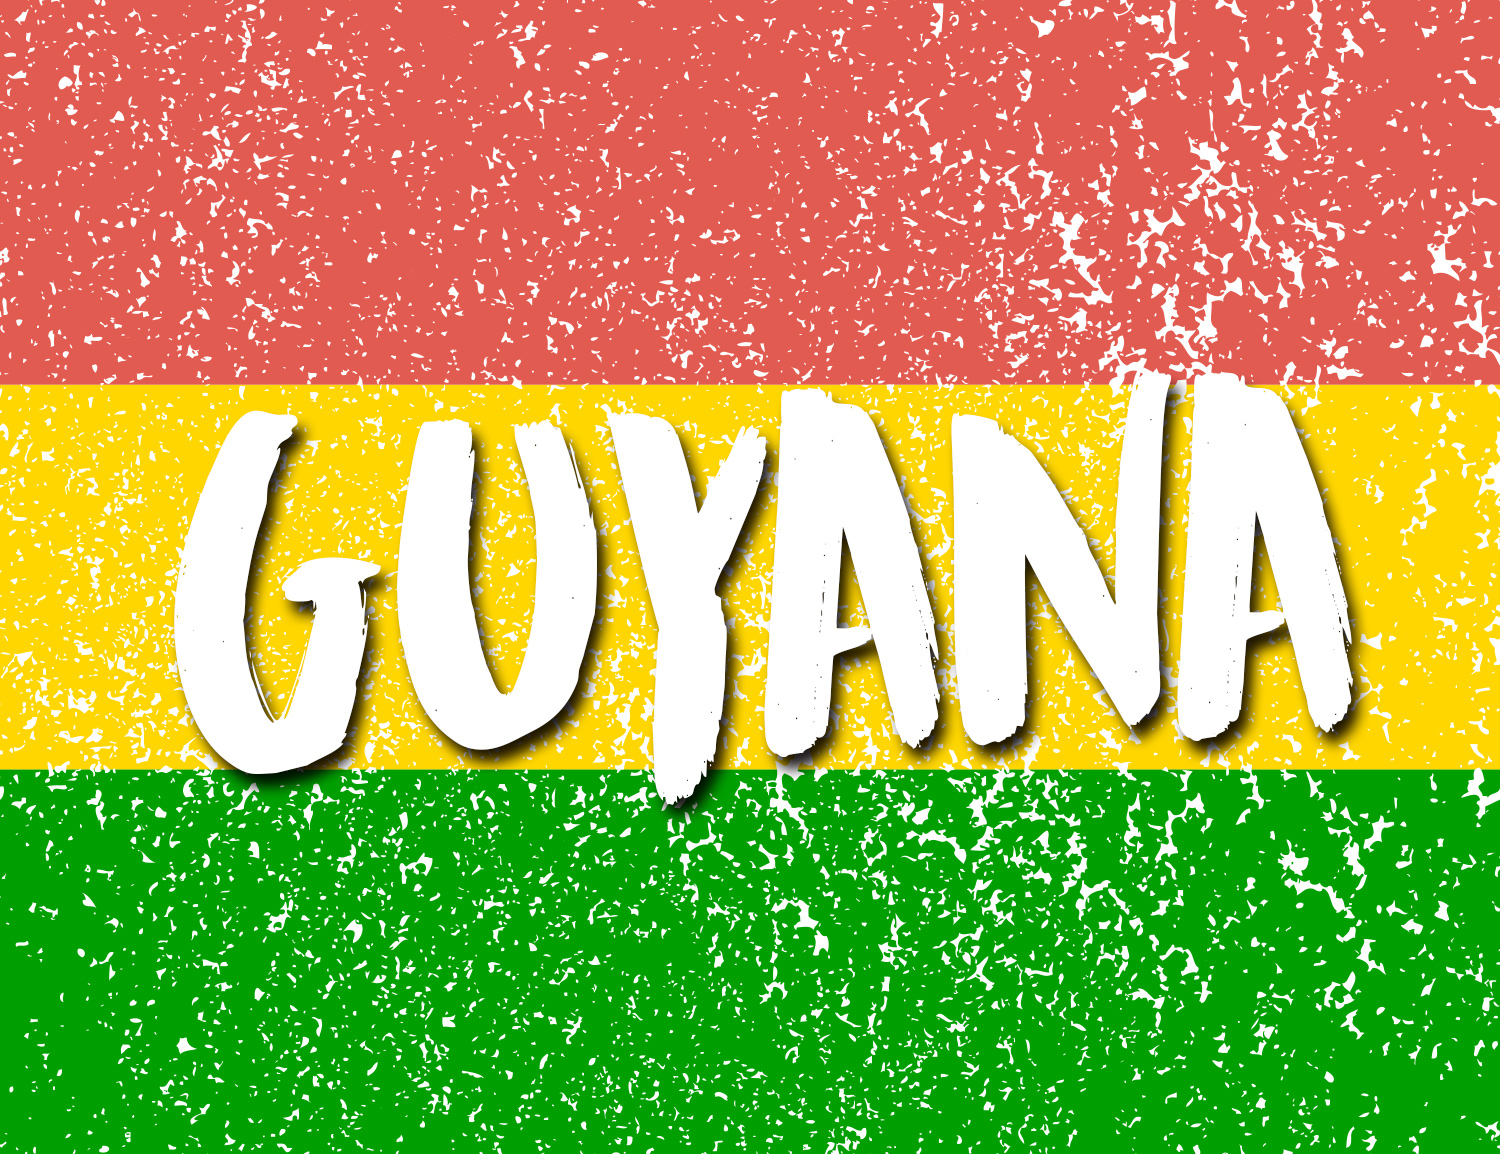 guyana_button.jpg